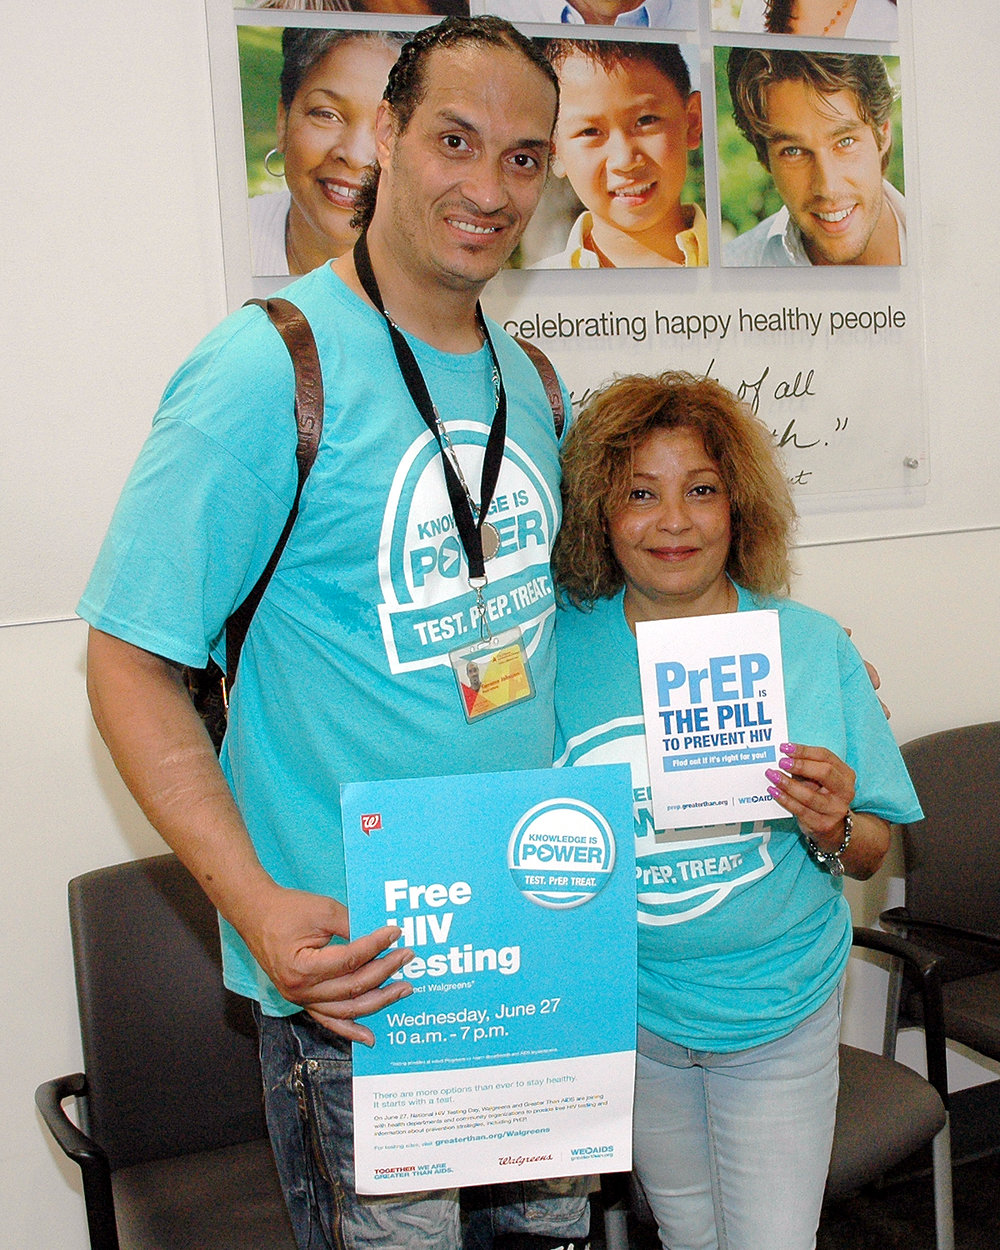 Velia and Terrence participating in Outreach / HIV Testing event at Walgreen's in Penn Station